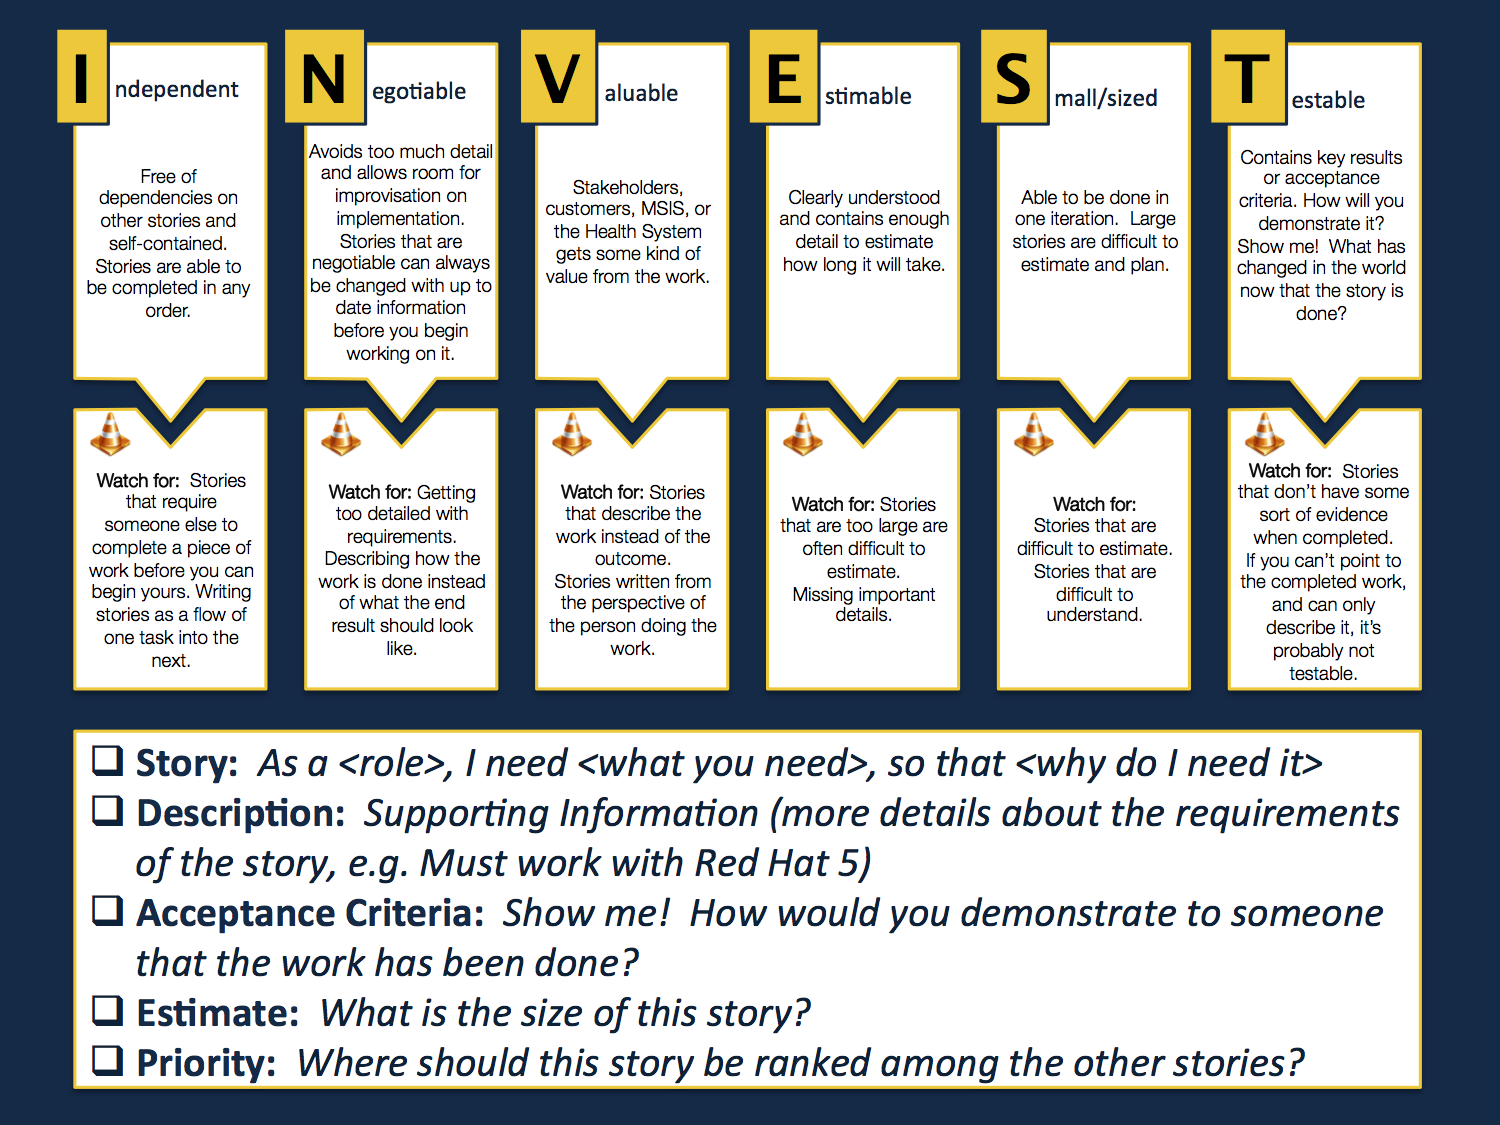 A tool that describes good story writing via the Invest review.